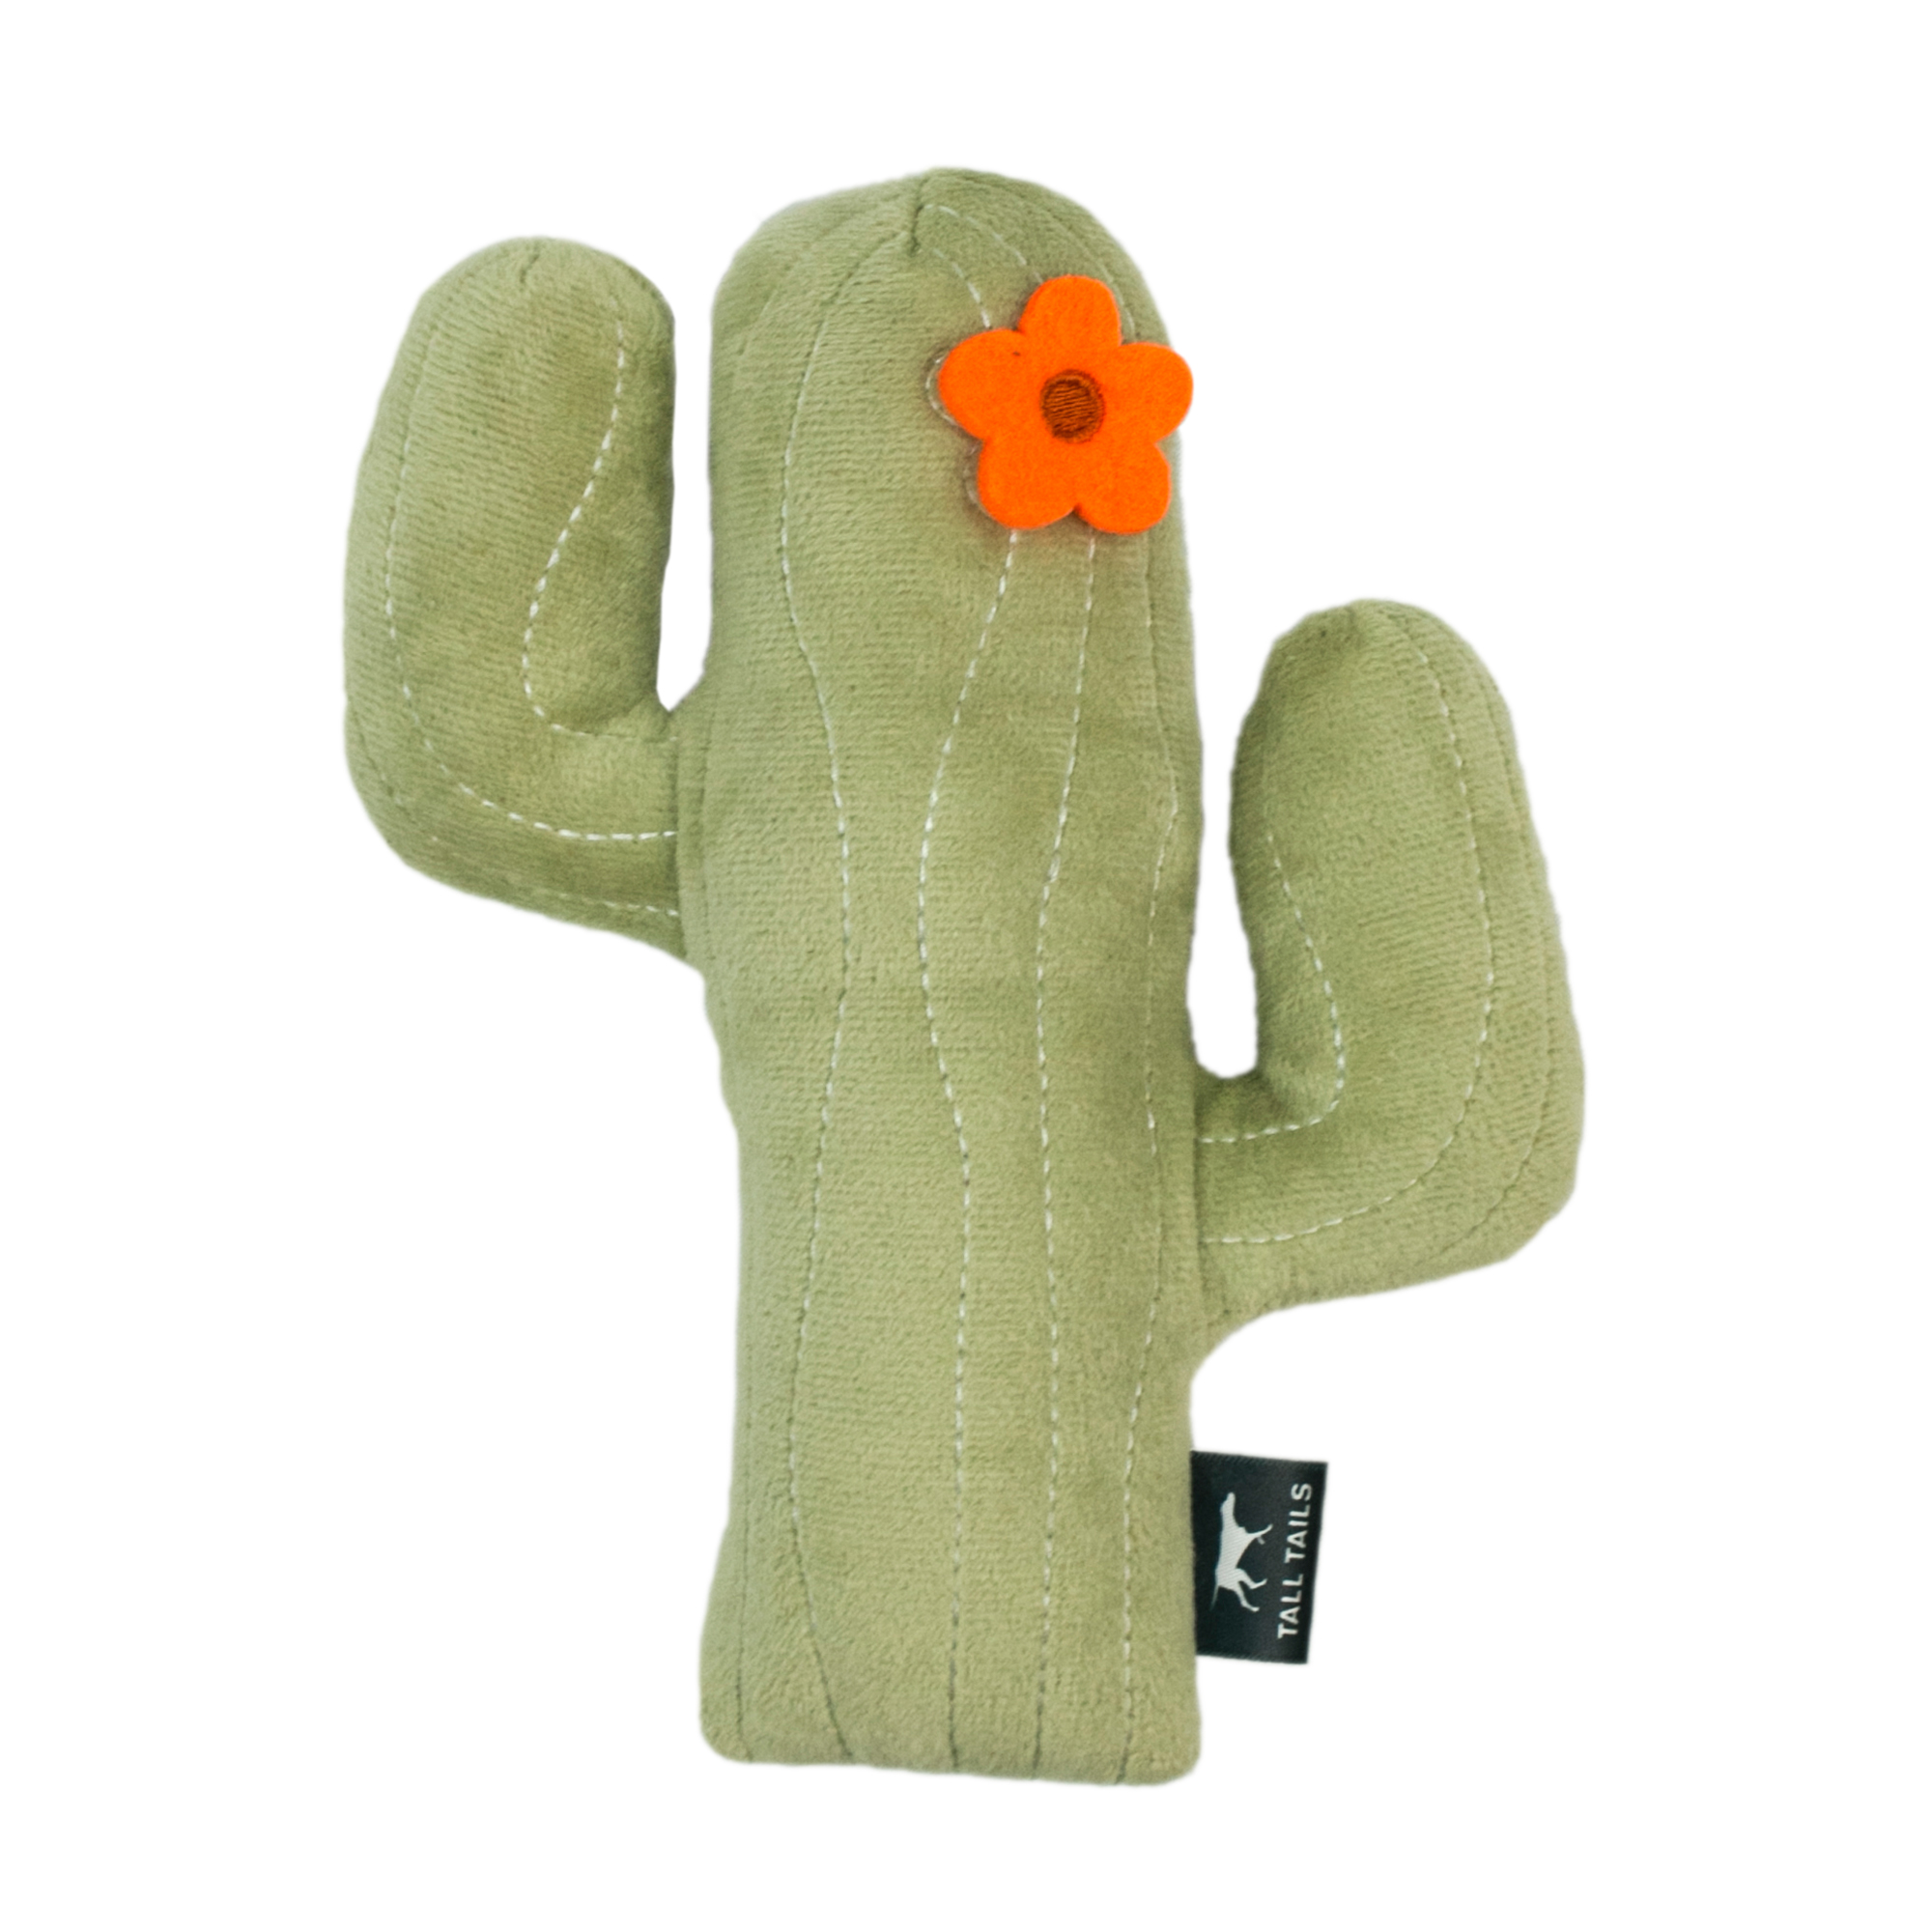 Tall Tails Cactus With Squeaker Dog Toy, 8-in.